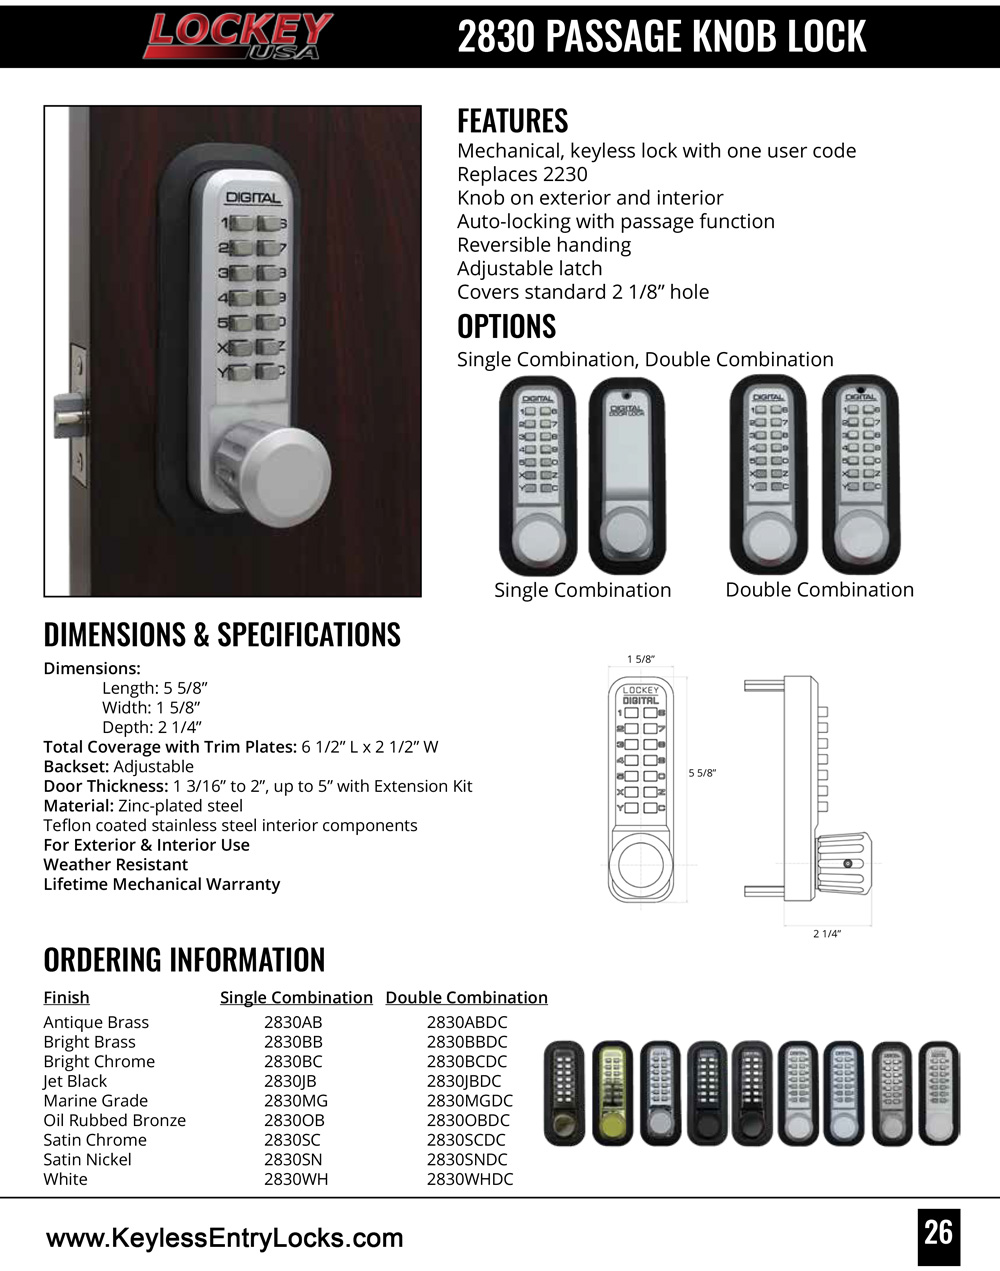 Lockey 2830 Passage Knob Latchbolt Keypad Lock